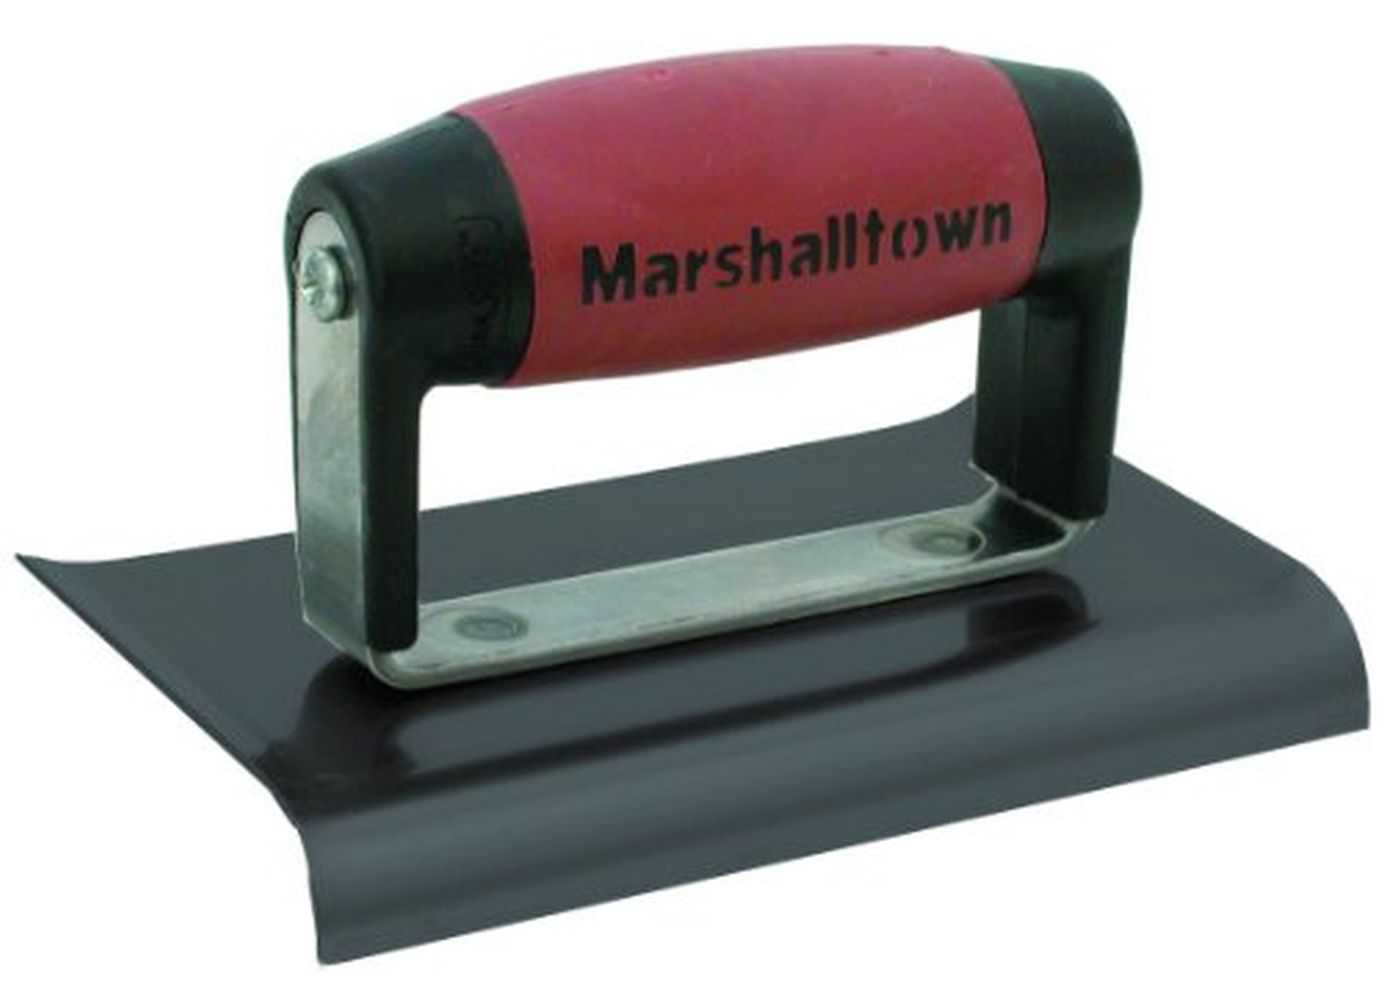 Marshalltown 121BD 6 X 3 BS Edger-Curved Ends 1/2R, 5/8L-DuraSoft Handle